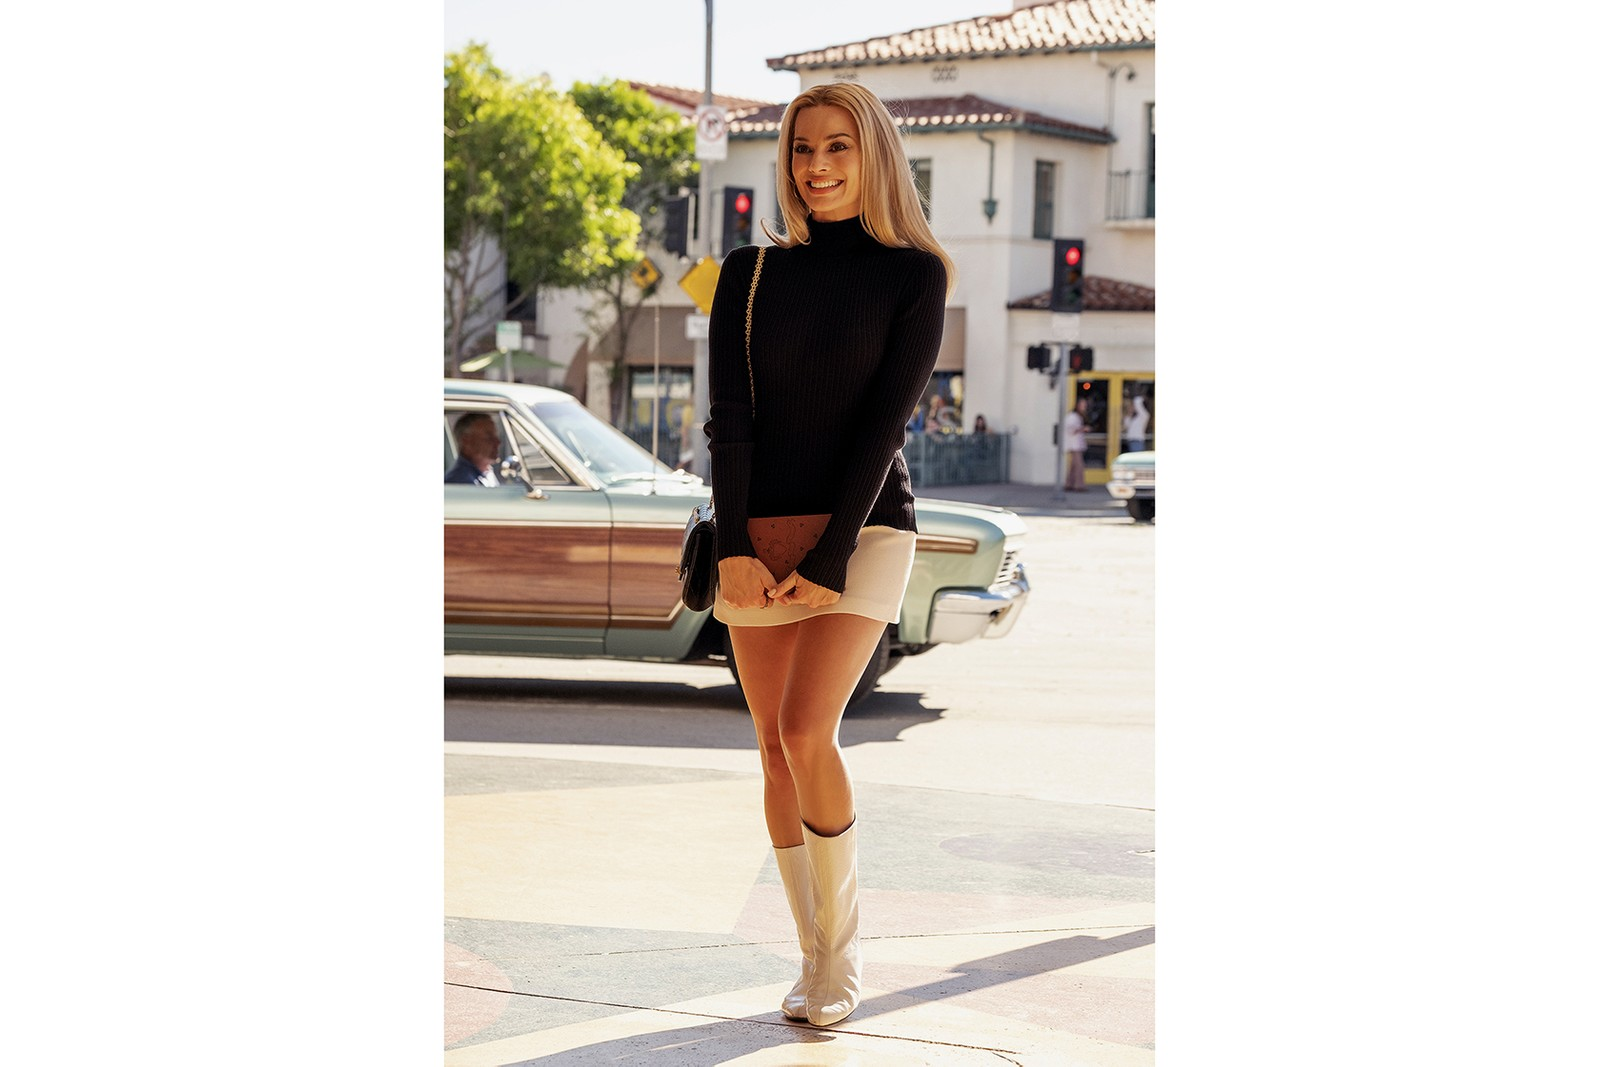 quentin tarantino once upon a time in hollywood best outfits looks margot robbie leonardo dicaprio brad pitt '60s fashion 1960s style vintage sharon tate rick dalton cliff booth